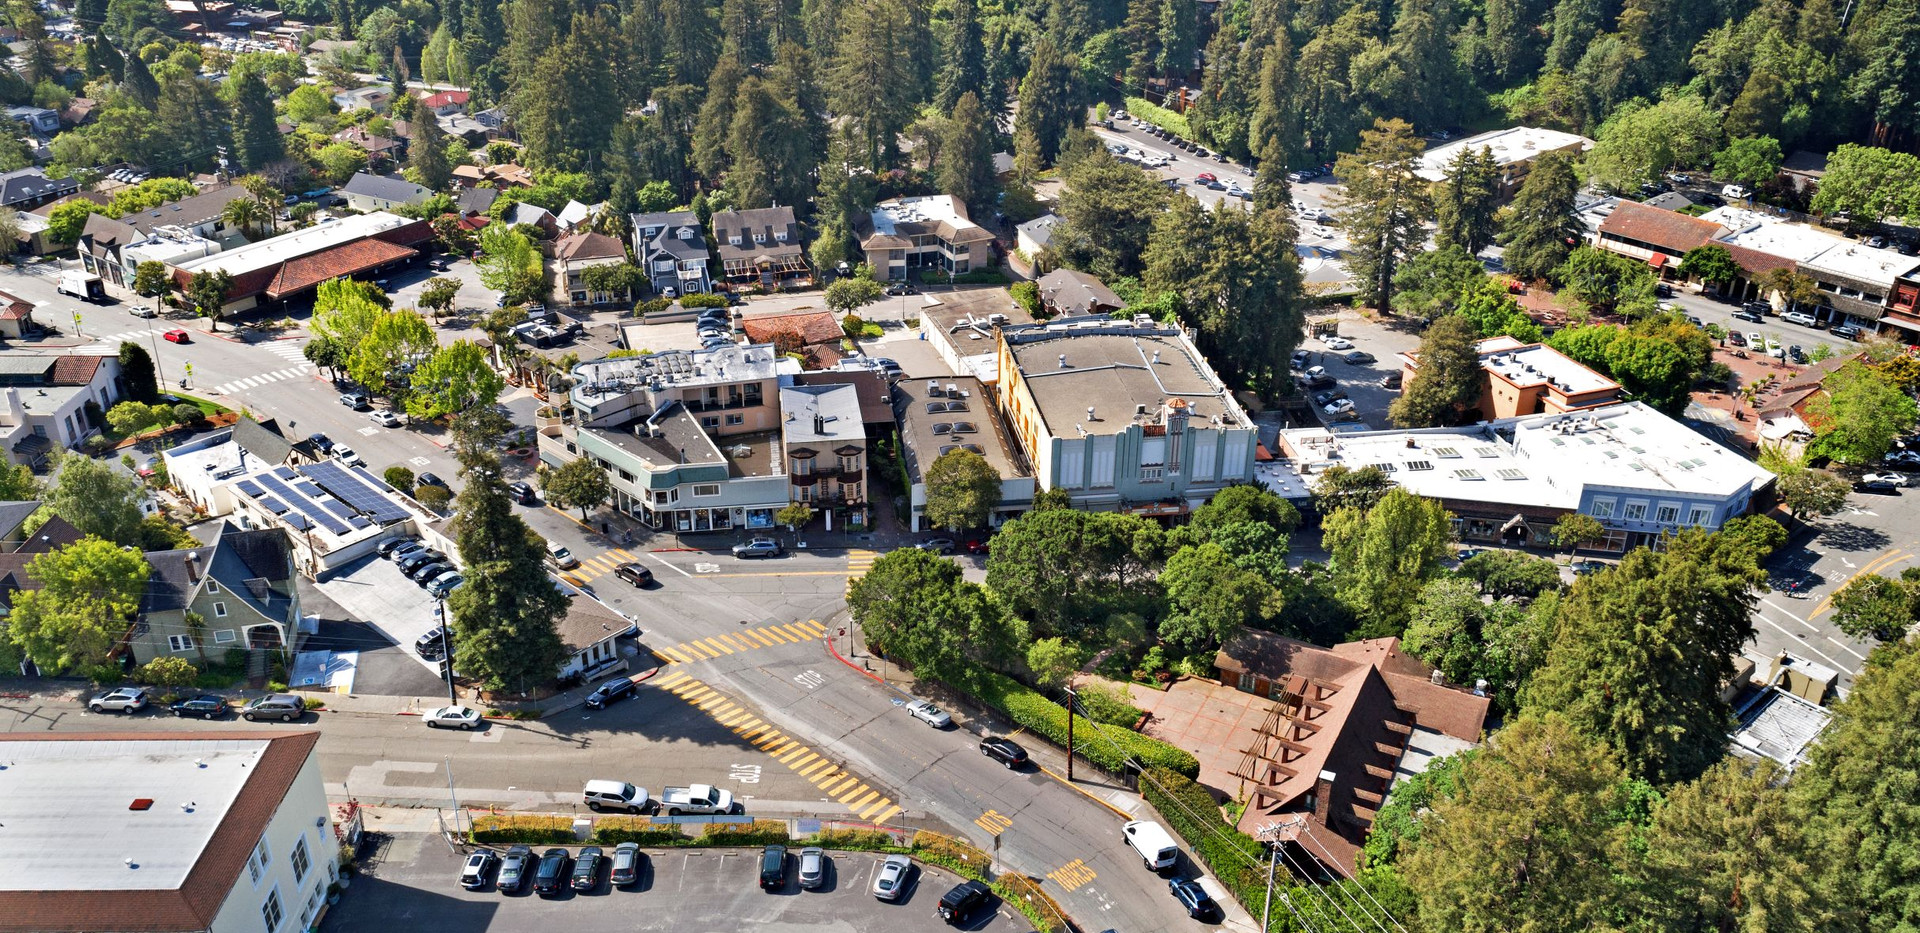 Playa Mill Valley- aftertec drone compan